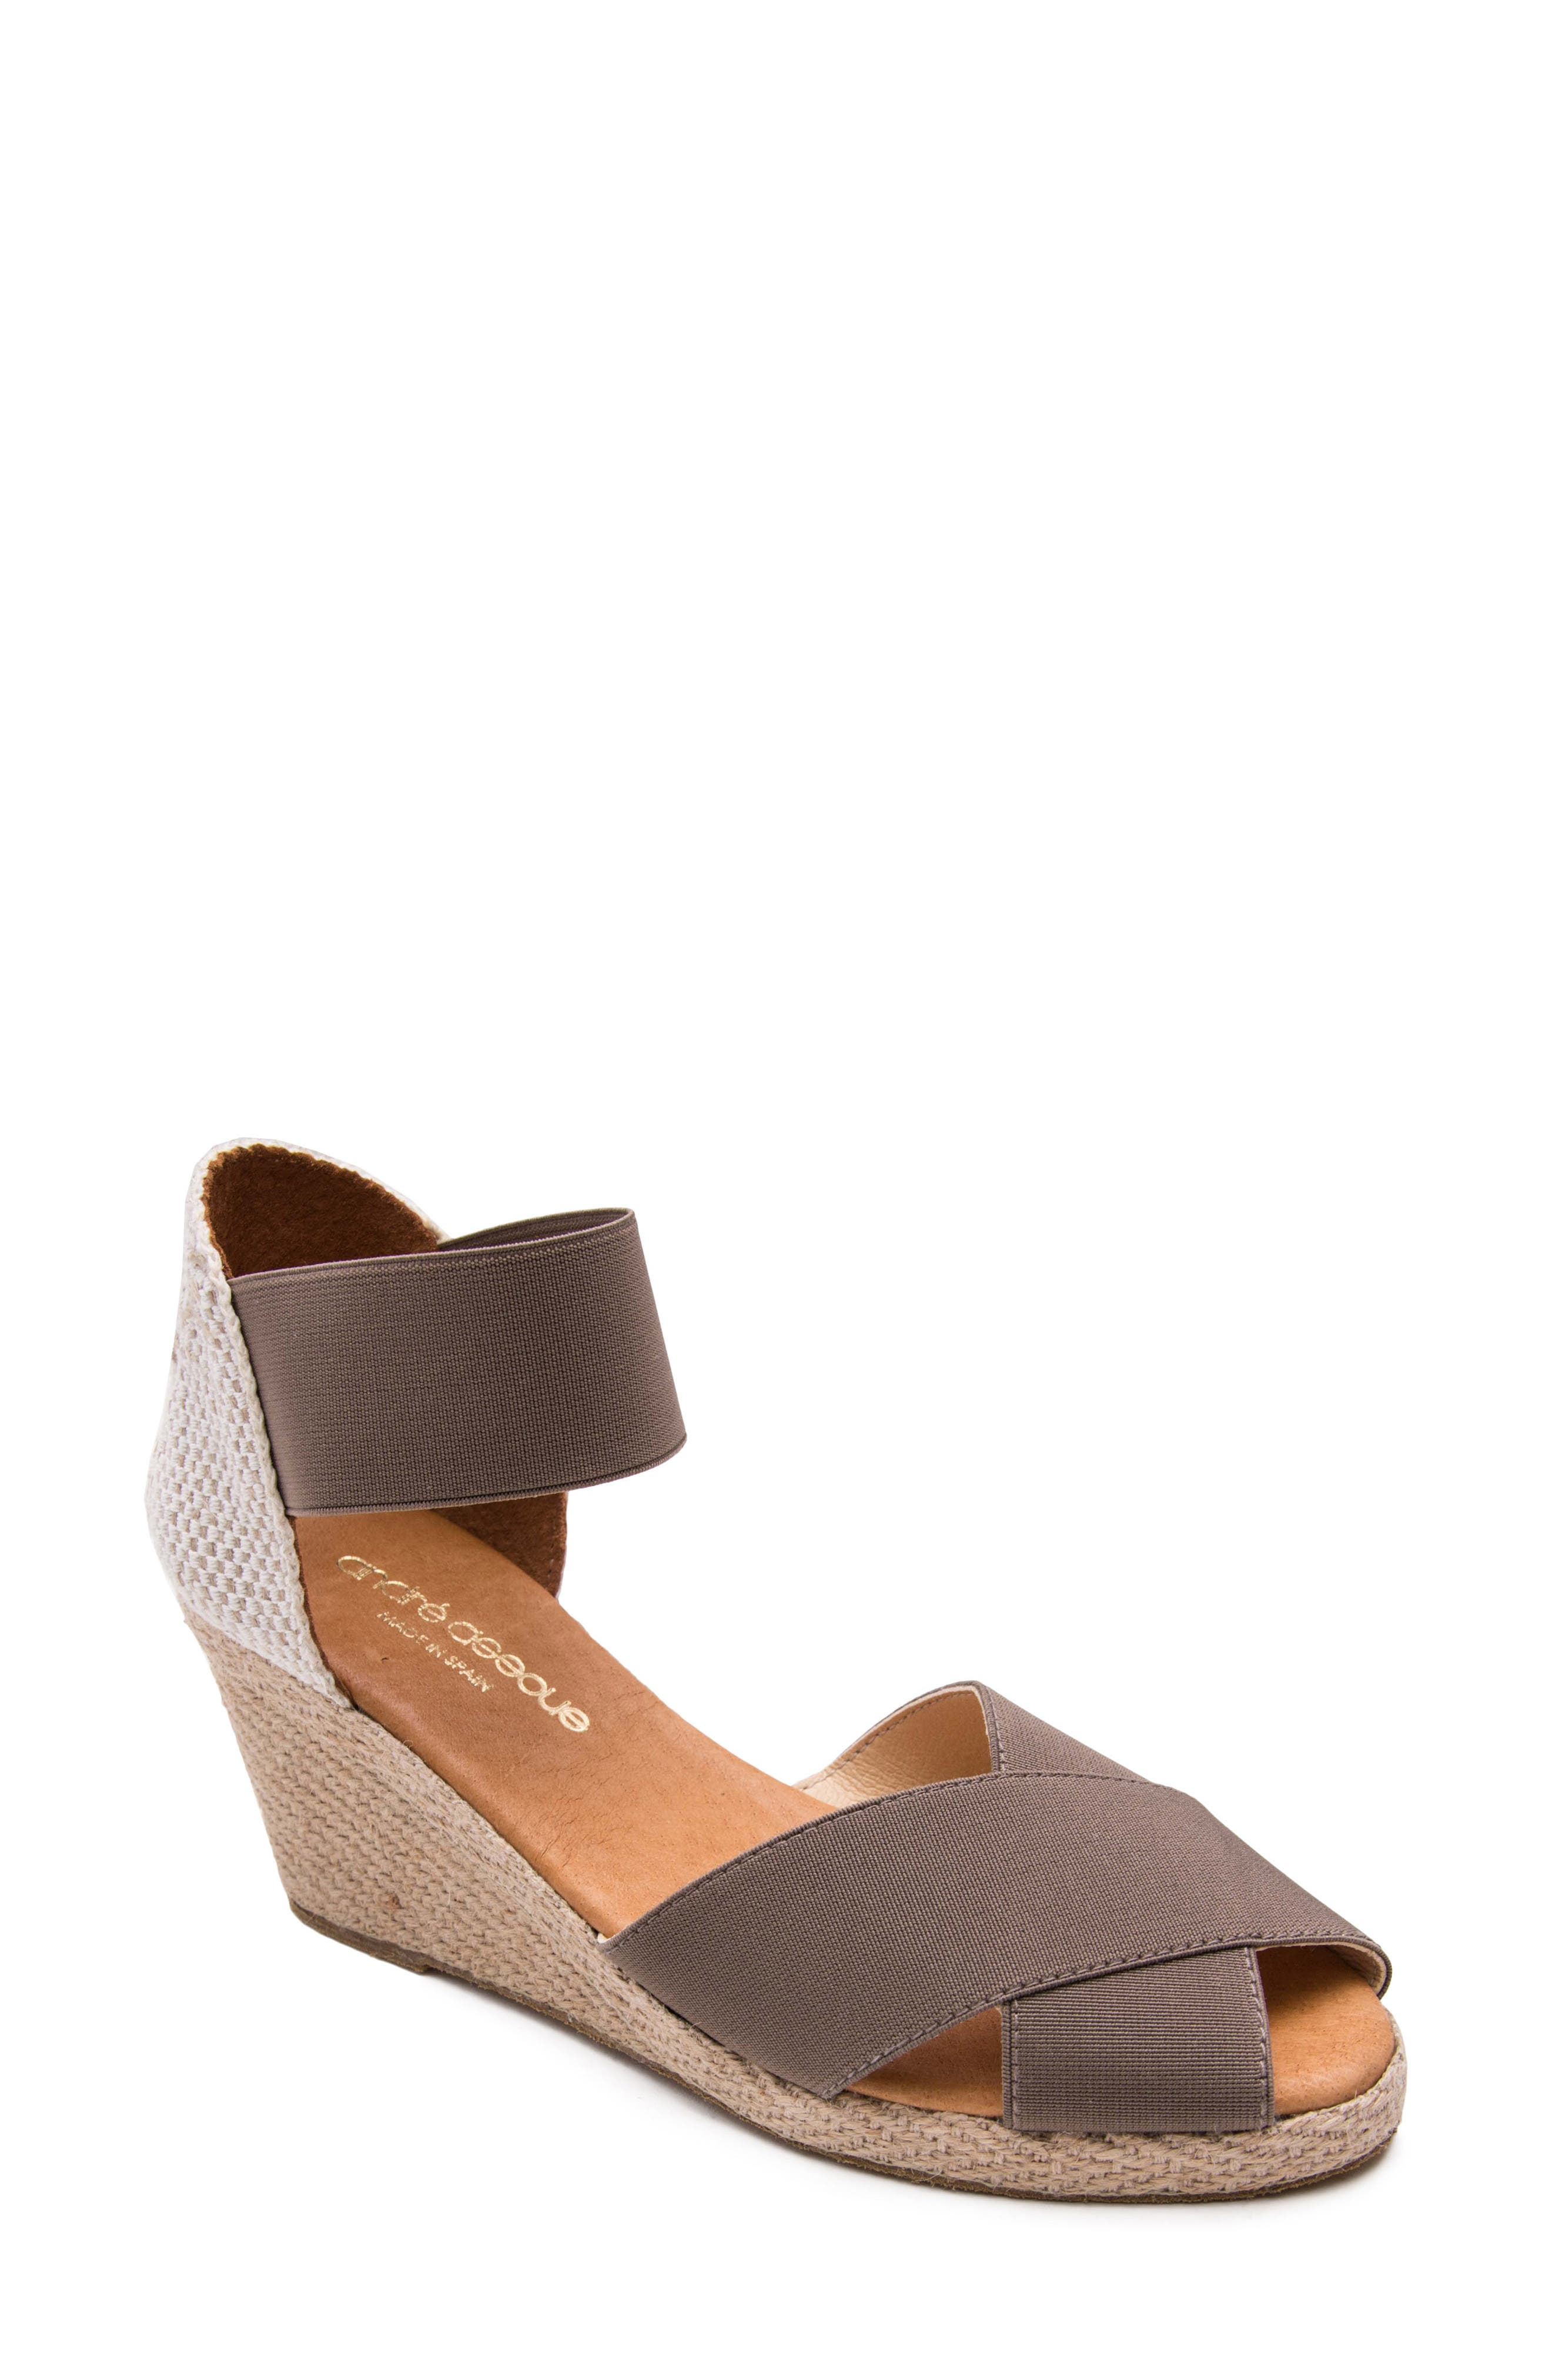 ANDRE ASSOUS Erika Espadrille Wedge in Taupe Fabric